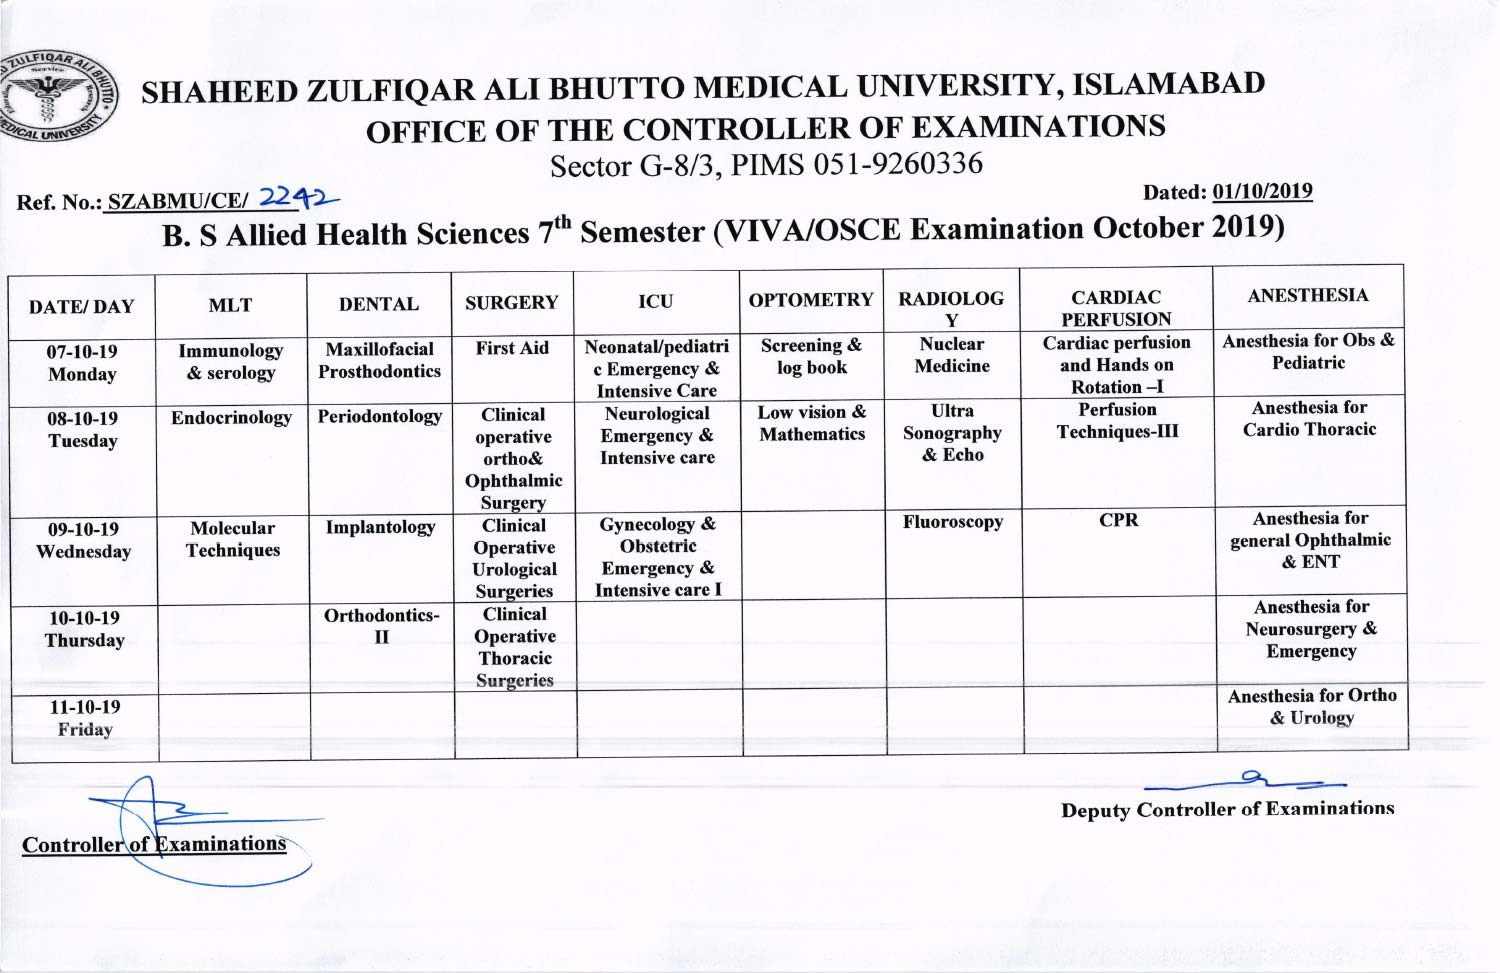 Date Sheet of B.S Allied Health Sciences (AHS) 7th Semester VIVA Examinations 2019